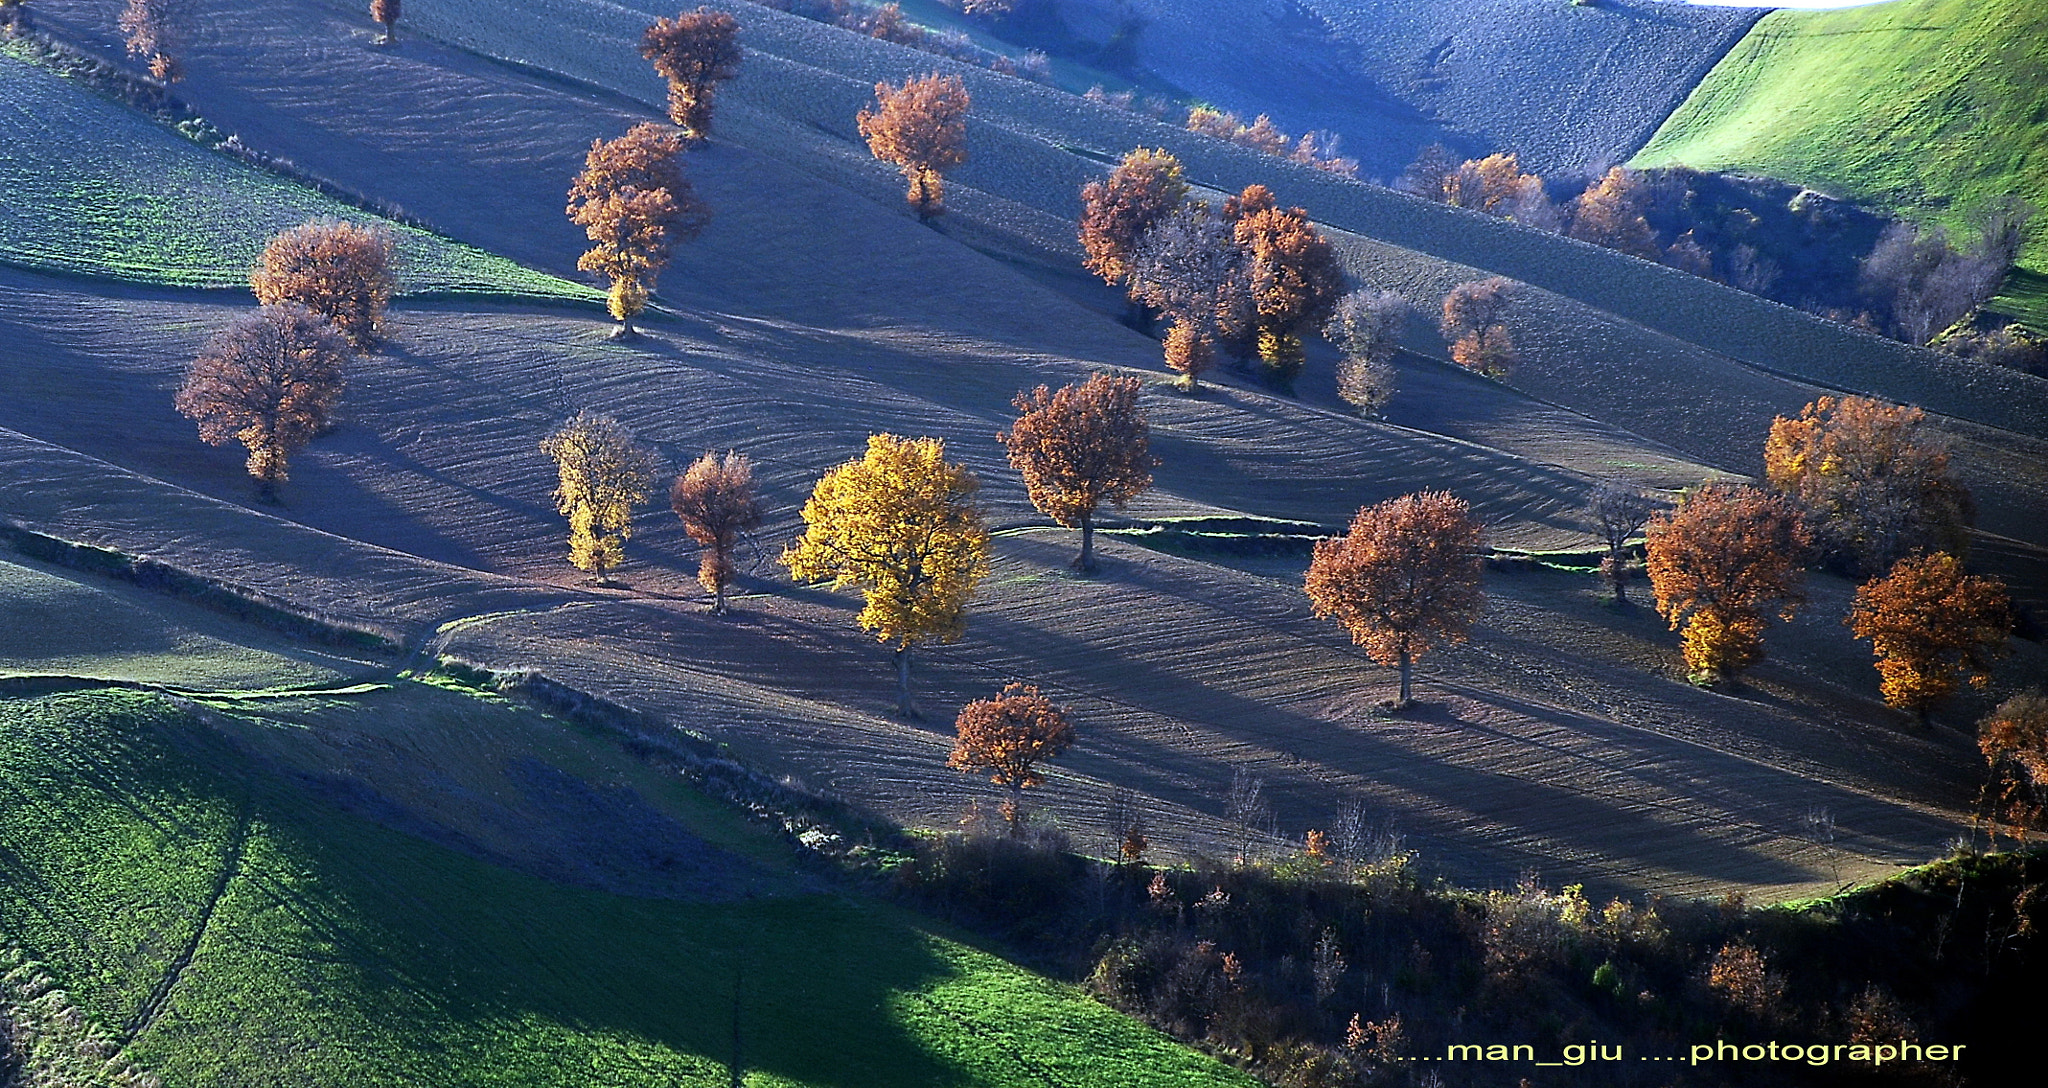 Photograph Landscape by Giuliano Mangani on 500px